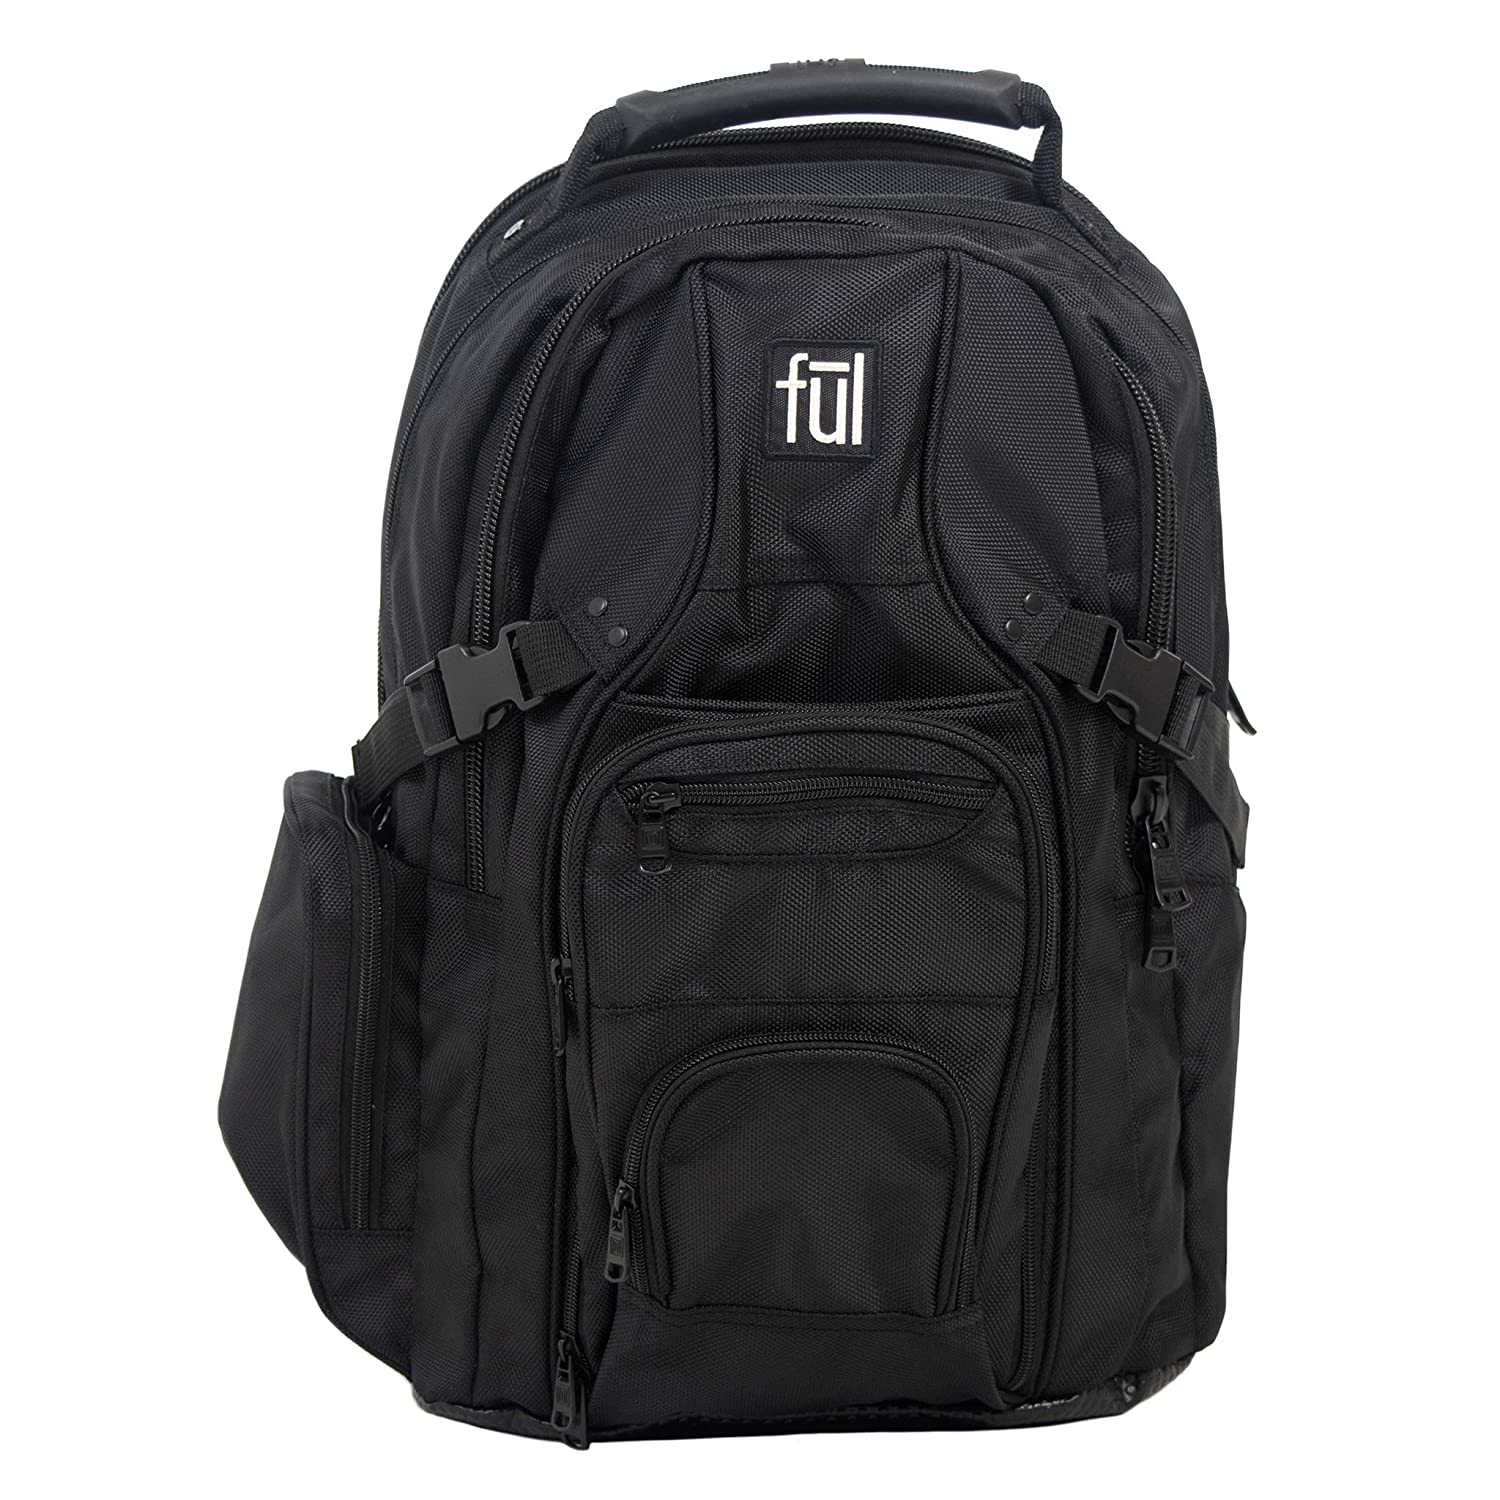 Ful Tennman Laptop Backpack 17 Inch Laptop Sleeve Black